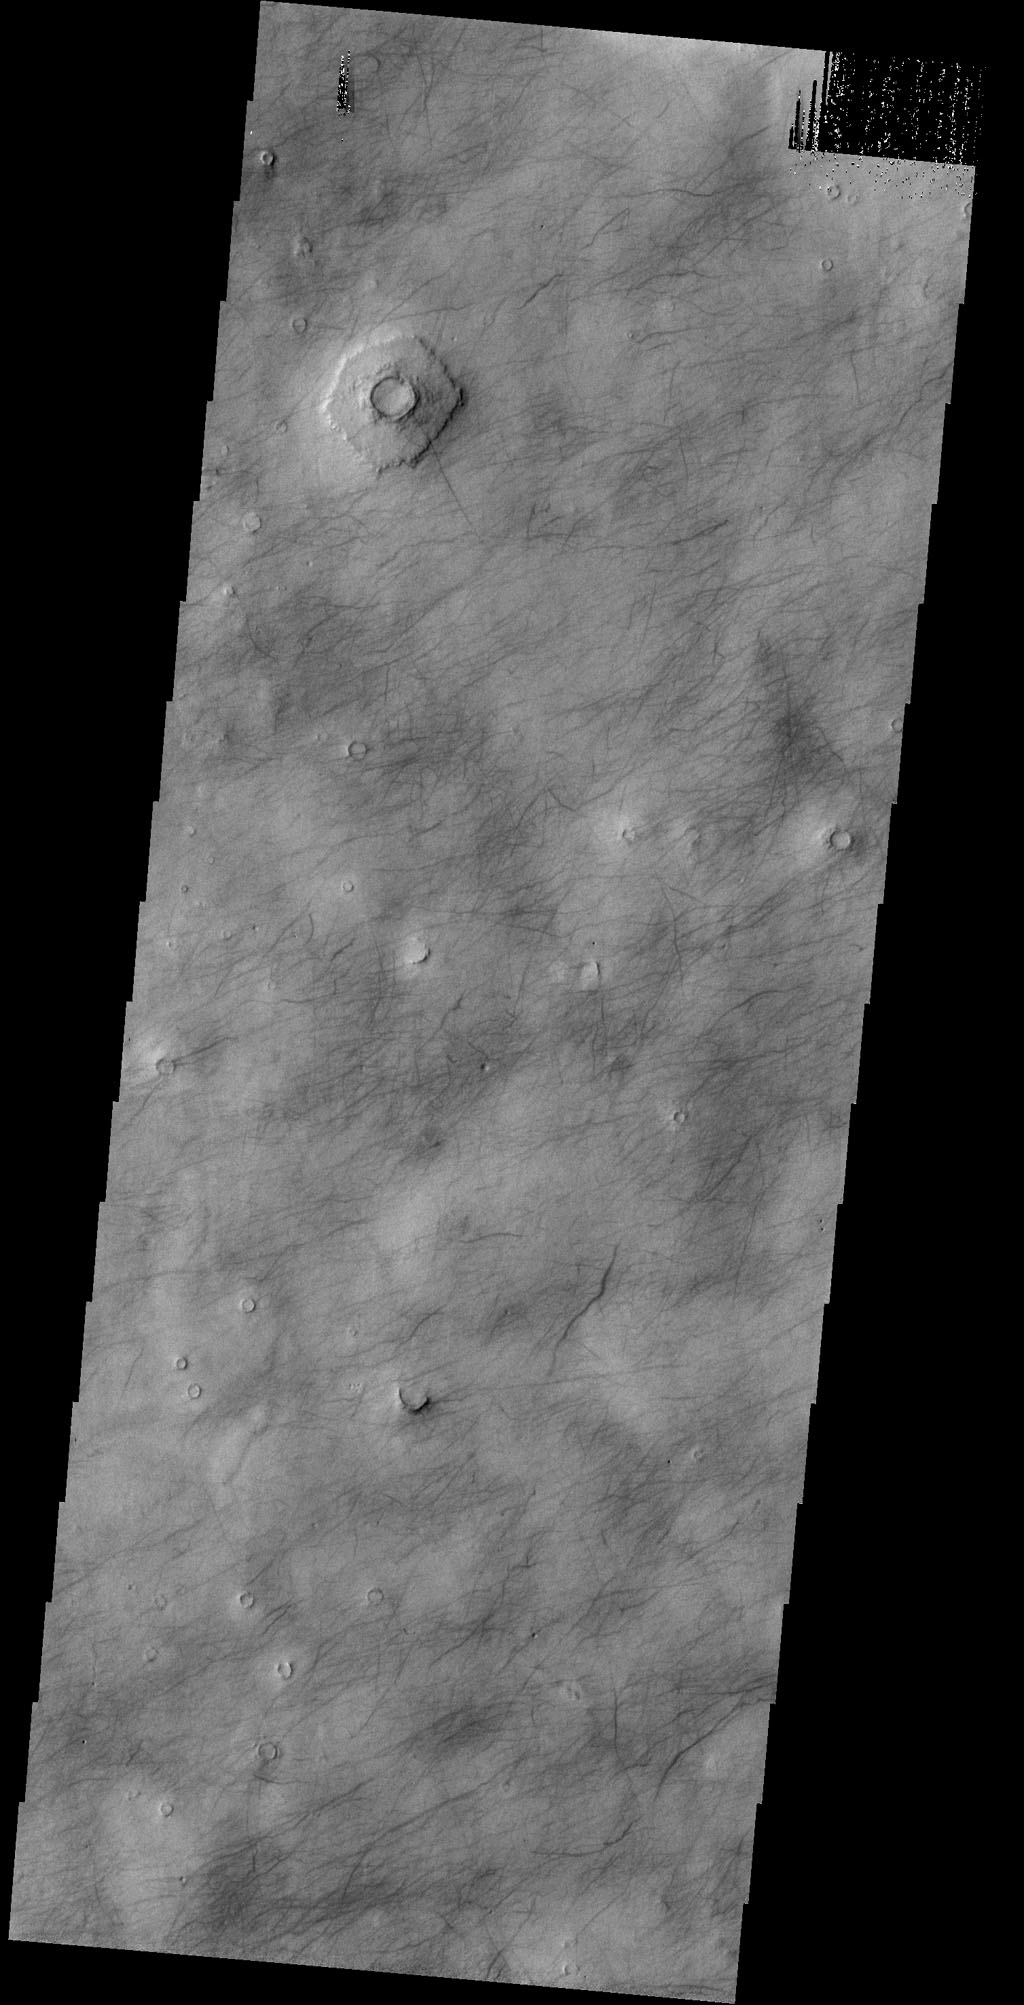 This image captured by NASA's 2001 Mars Odyssey spacecraft shows dust devil tracks covering most of the surface in this region of Utopia Planitia.